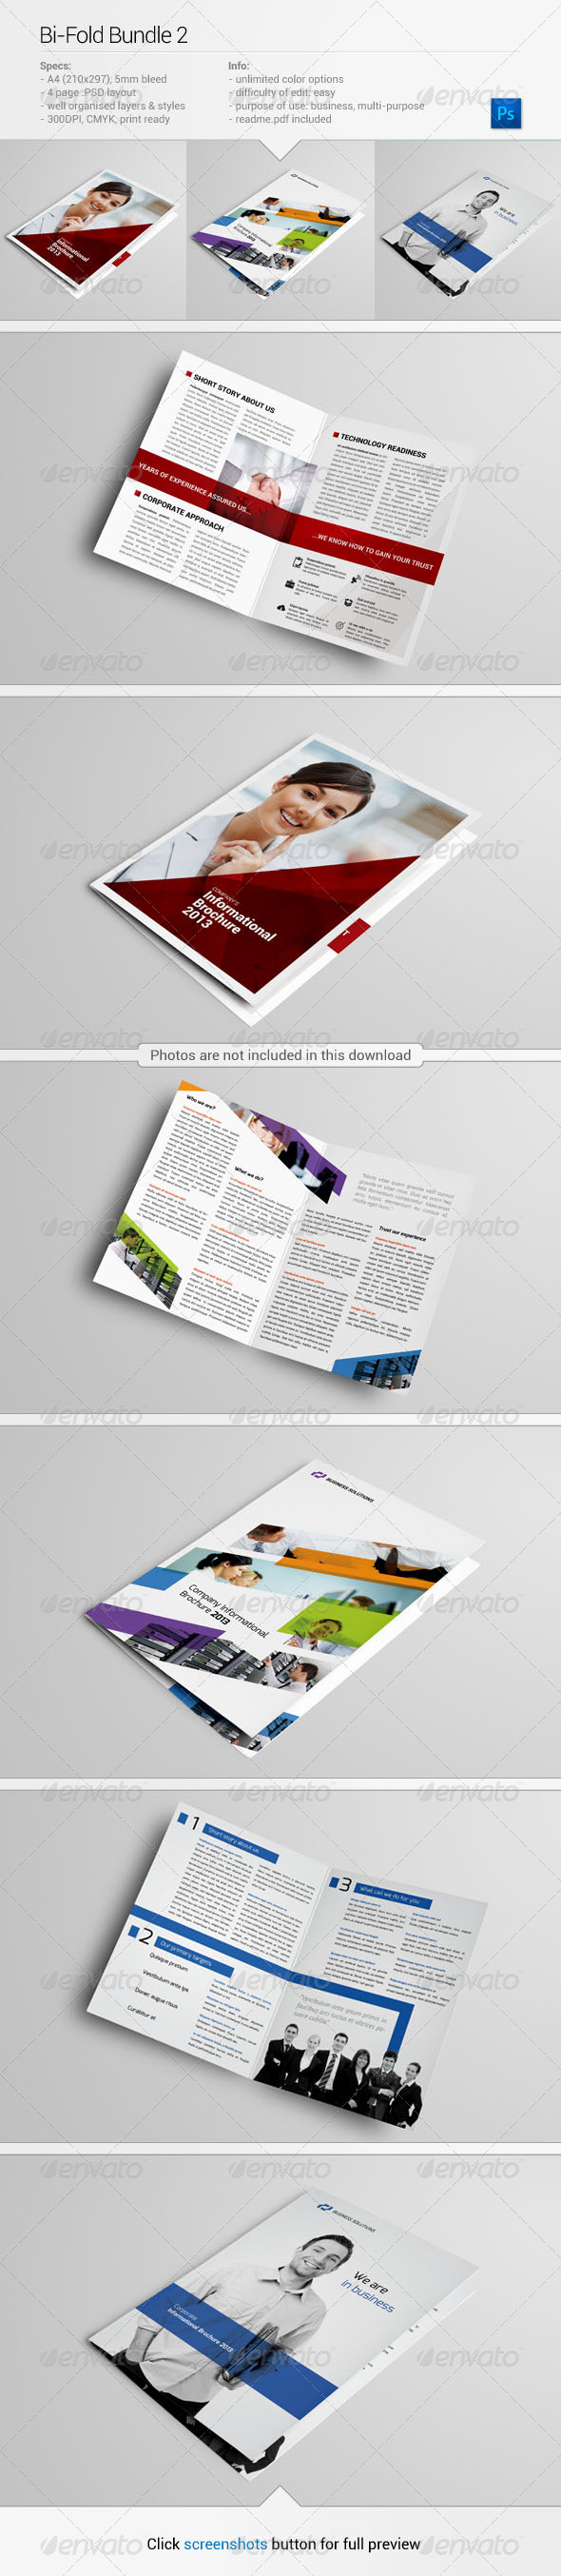 GraphicRiver Bi-Fold Bundle 2 5664426